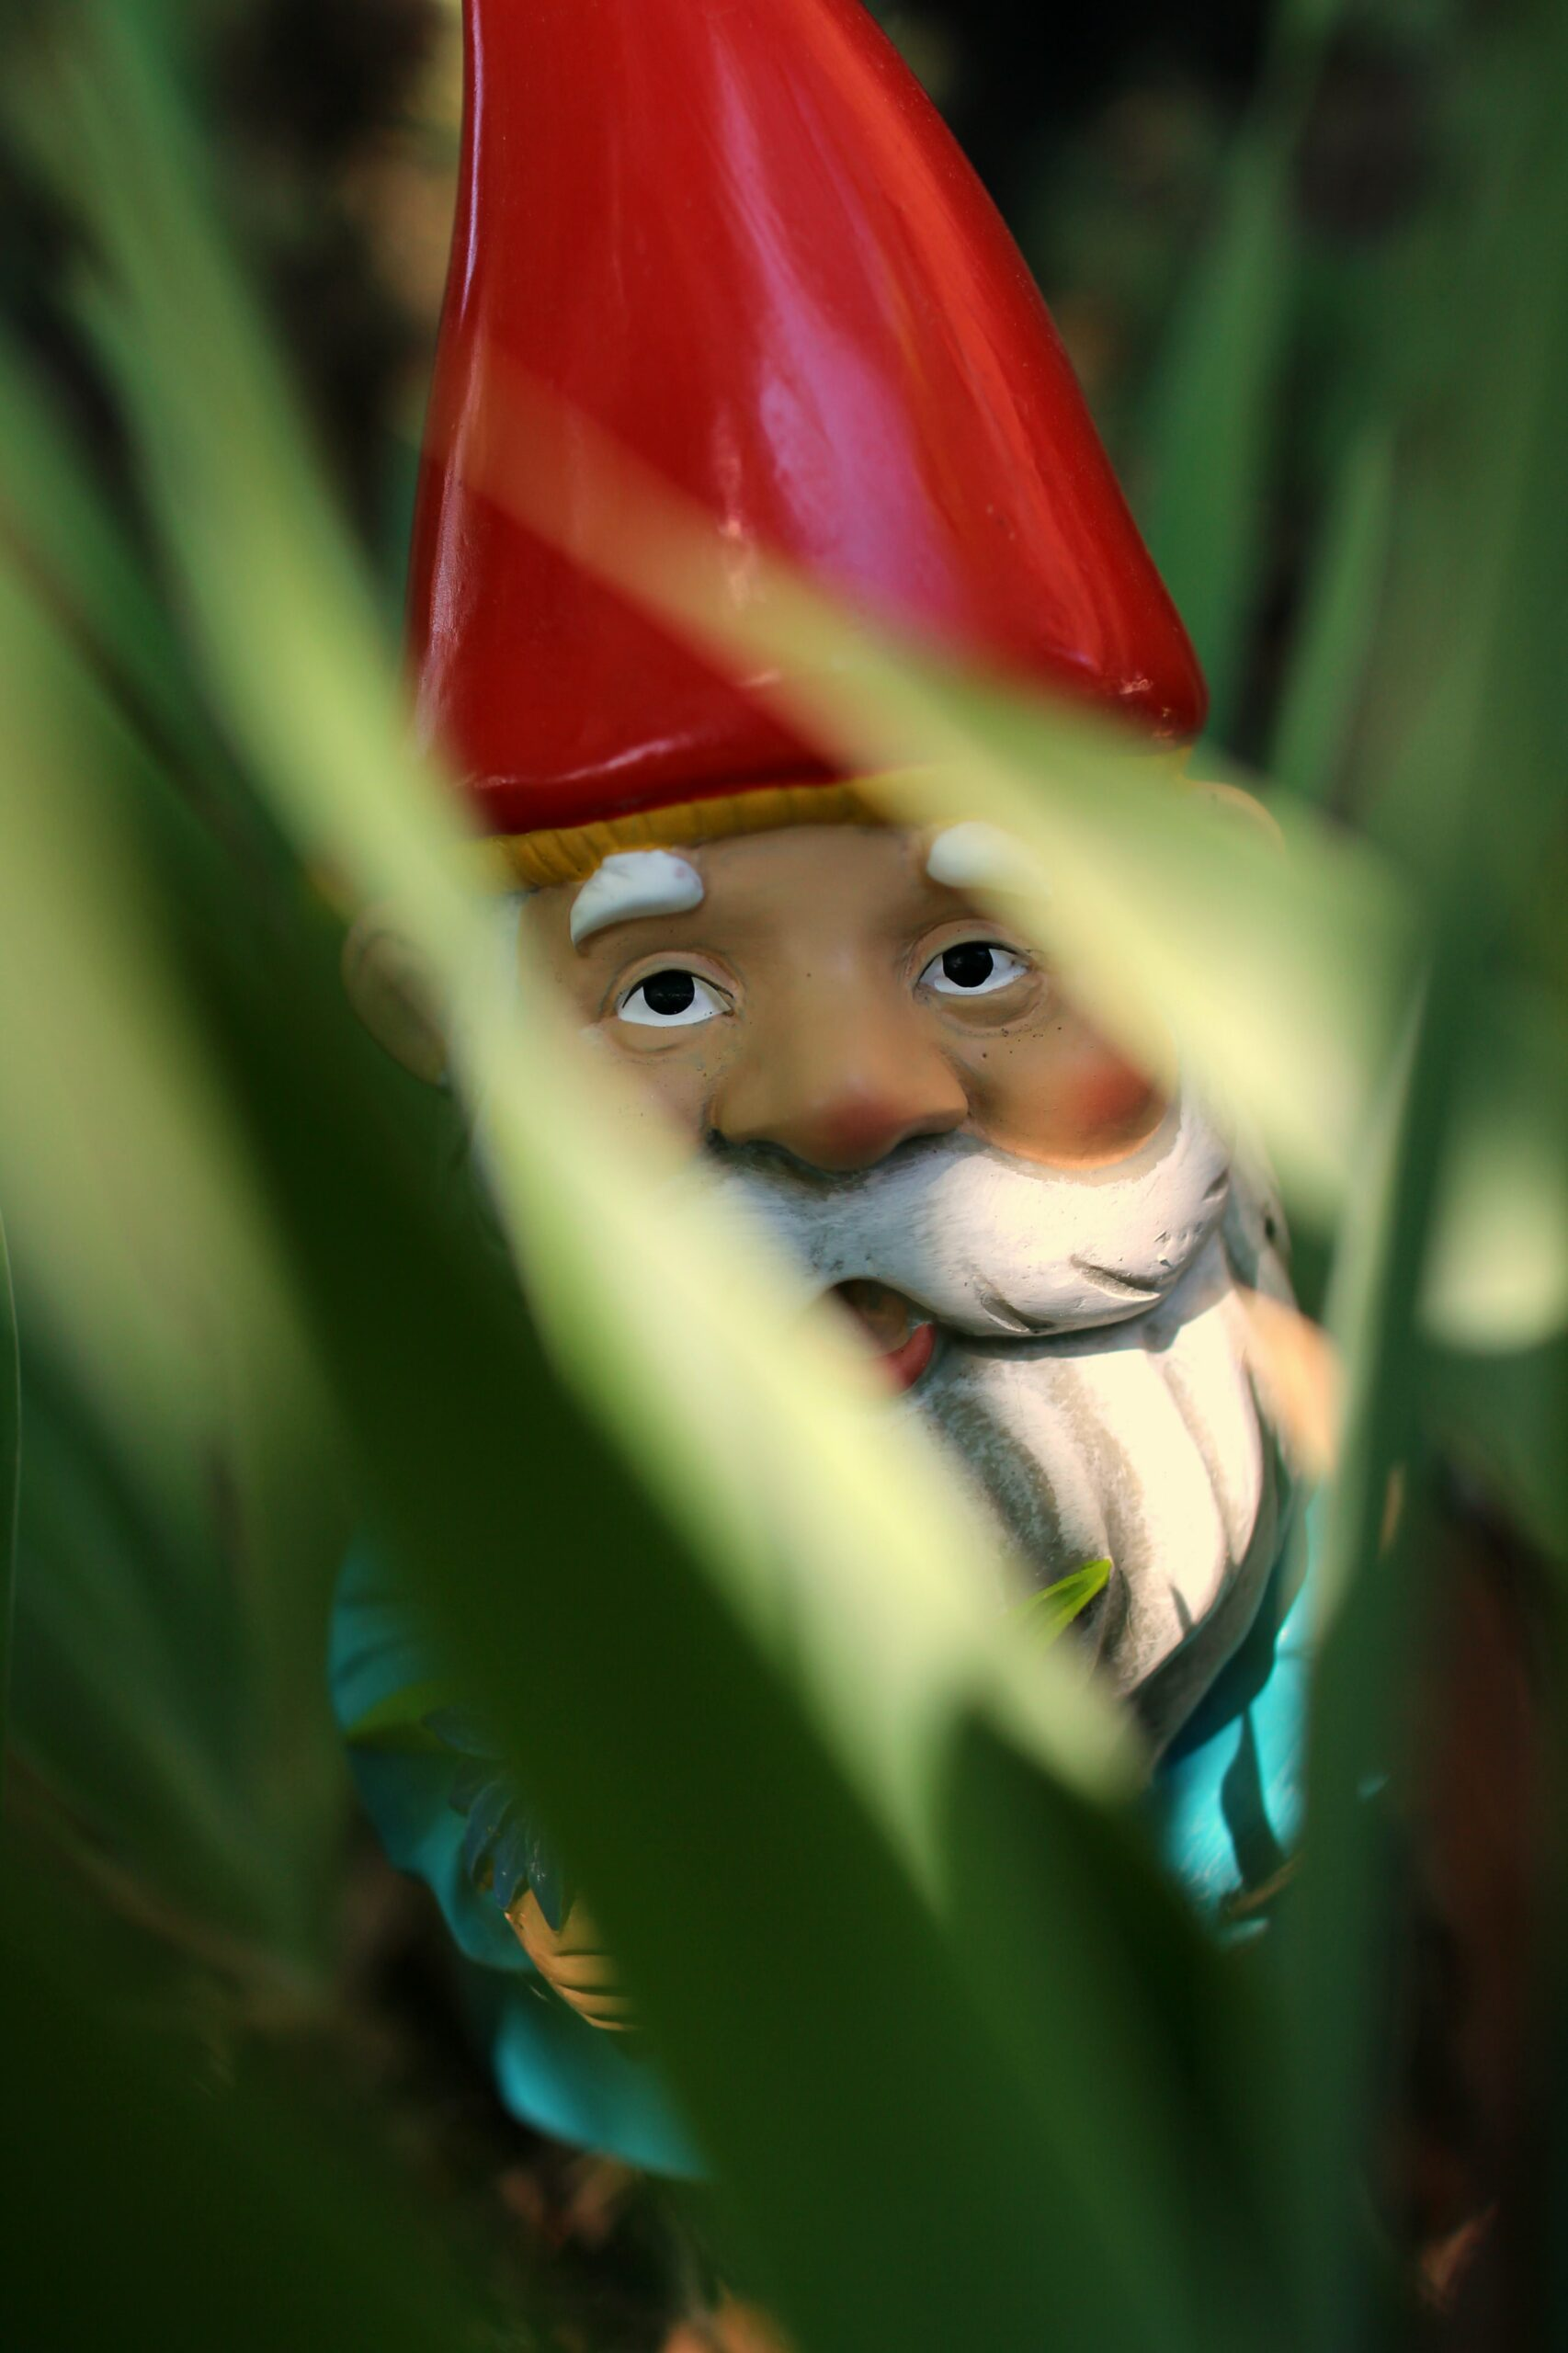 Where the research takes us: the history of garden gnomes